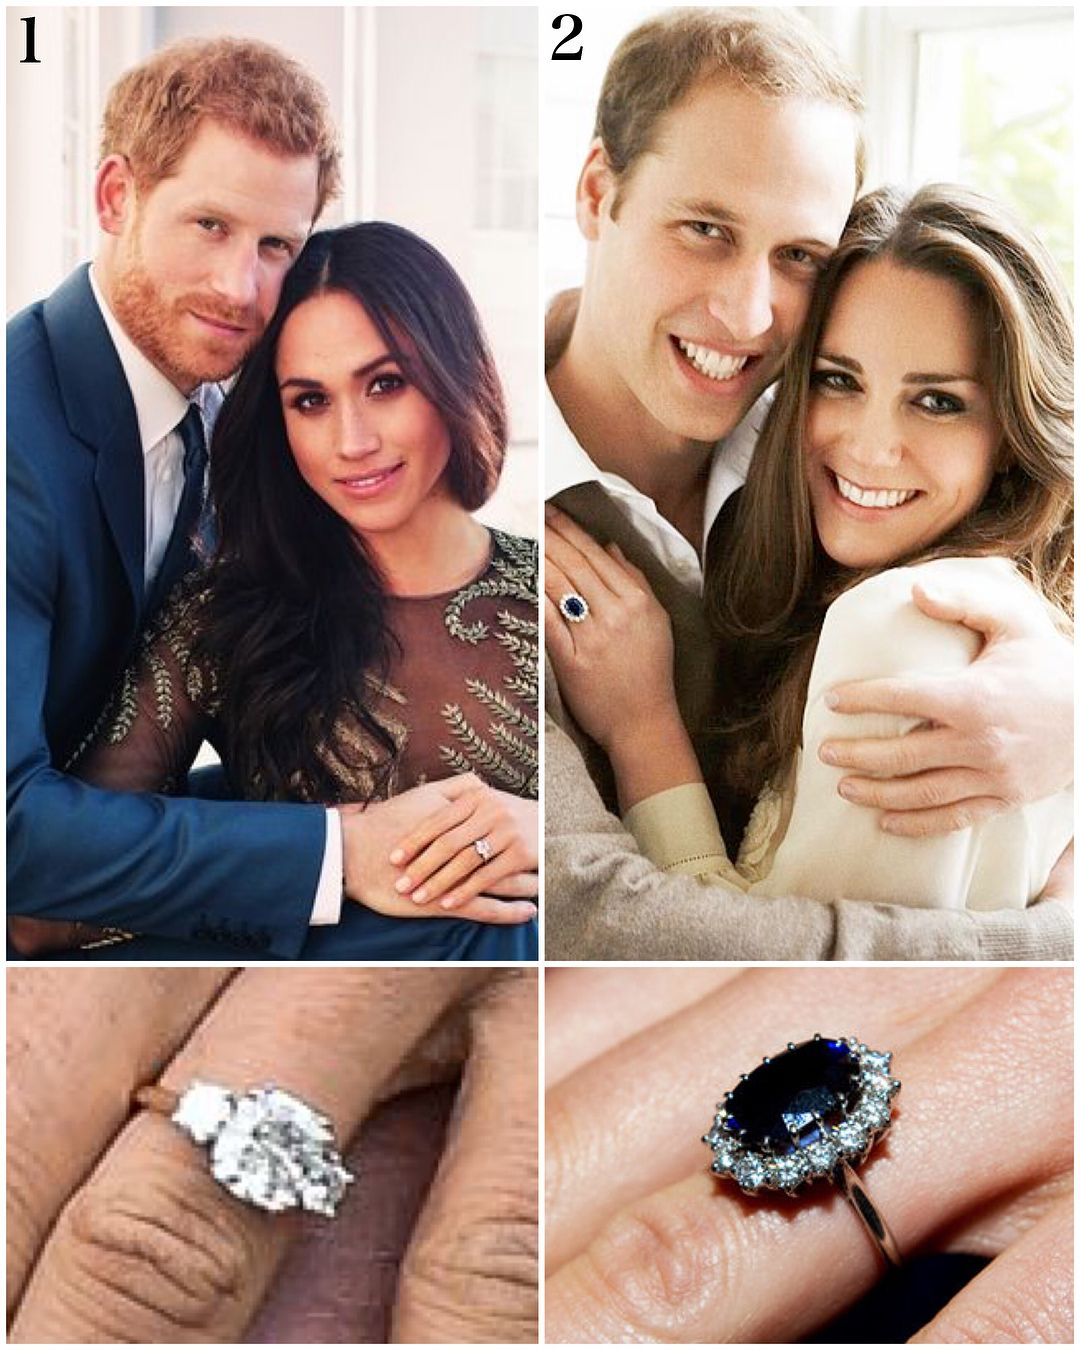 kate look years pinterest royal engagement duchess pin prince harry instagram back over meg meghan a the cambridge on of by dupler hrh royalty at josie rings markle